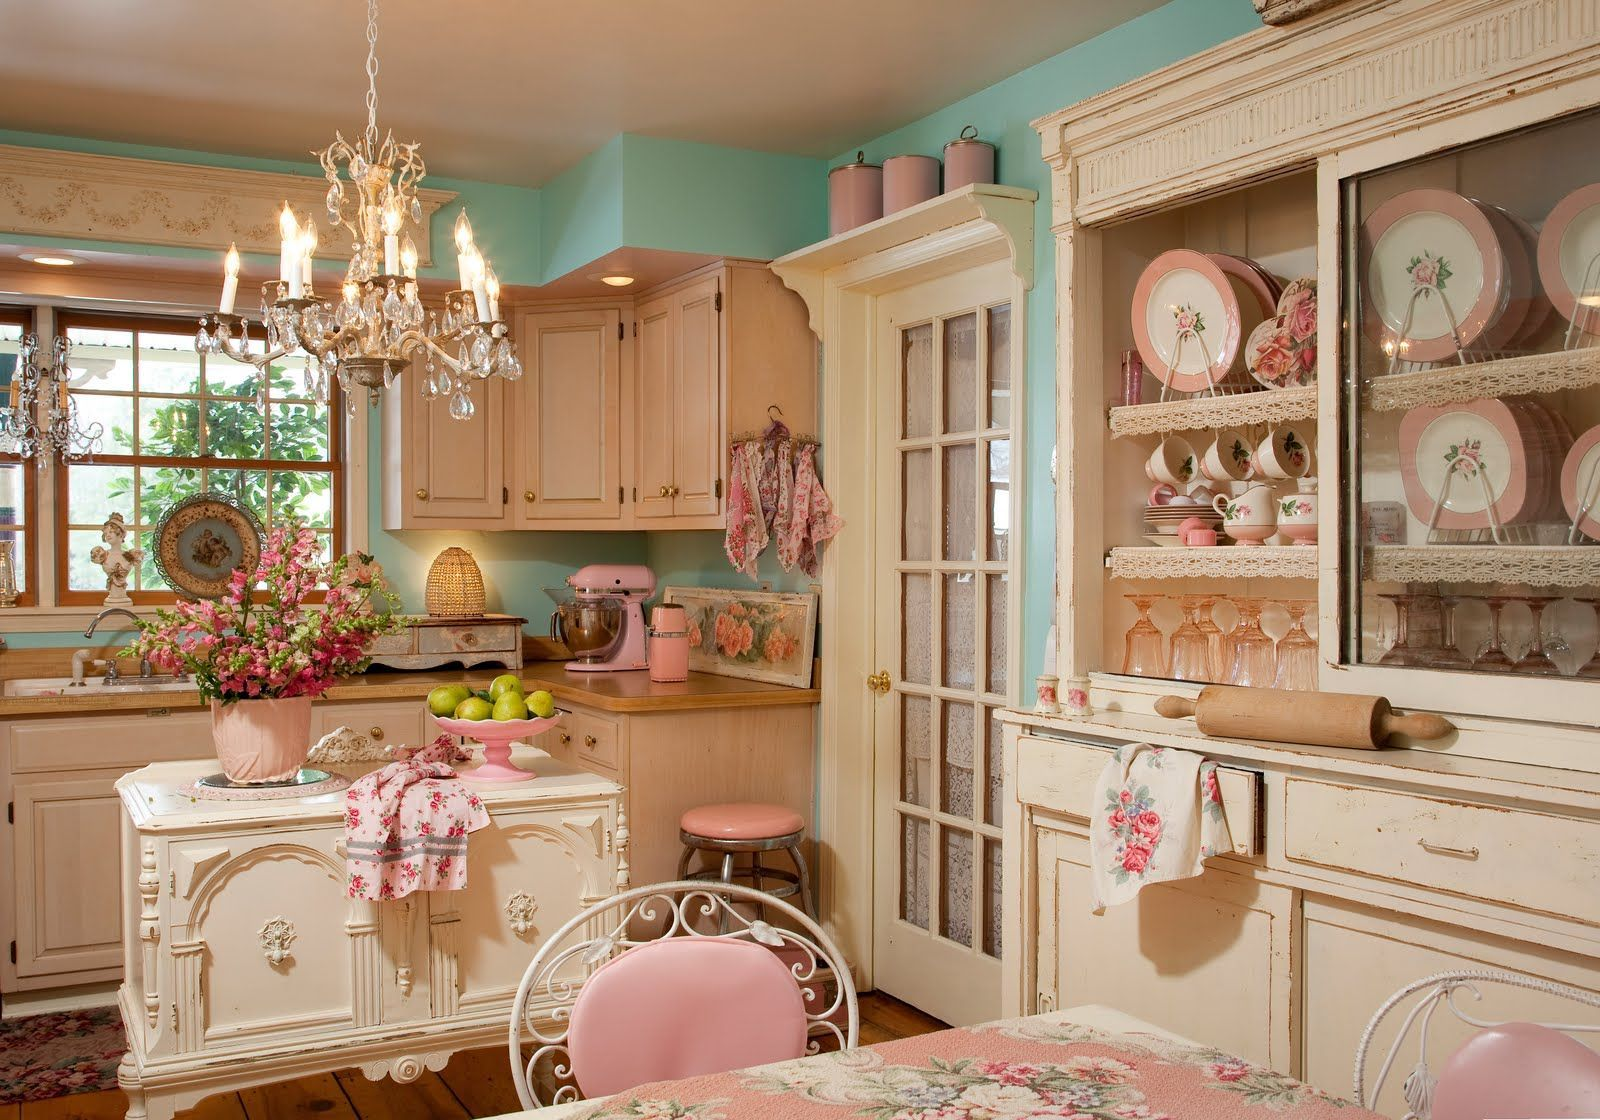 17 Best images about kitchen ideas on Pinterest | Vintage kitchen, Shabby  chic decorating and Shabby chic